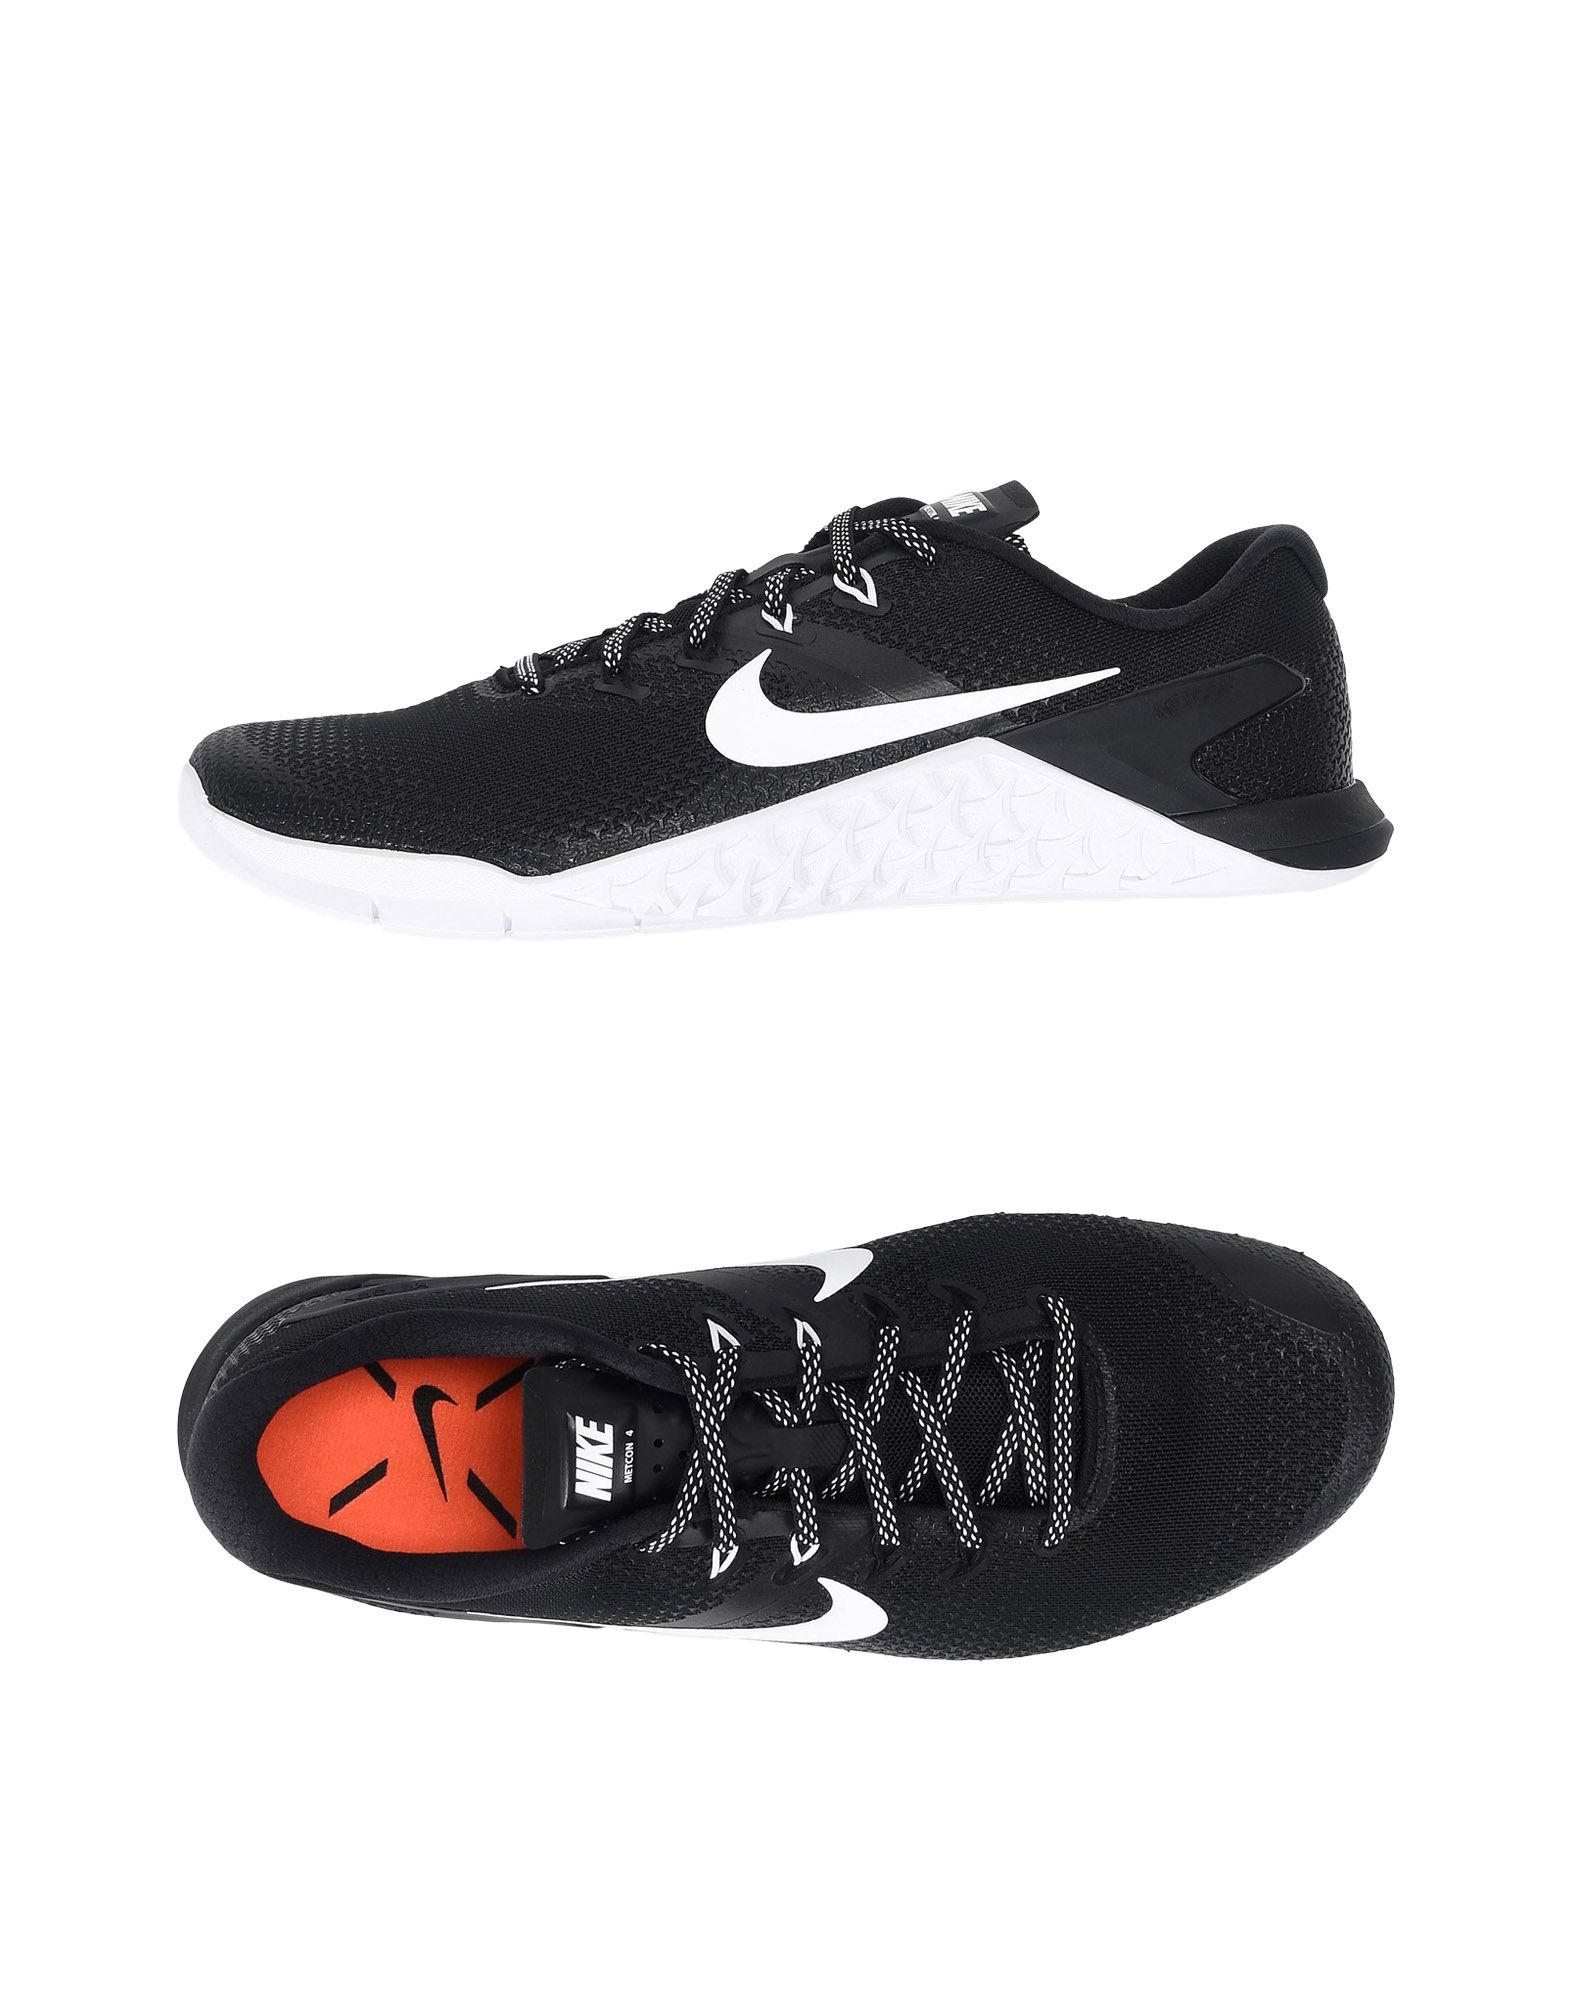 Nike  Metcon 4 - Sneakers - Men Men Men Nike Sneakers online on  United Kingdom - 11481795WN 31a641